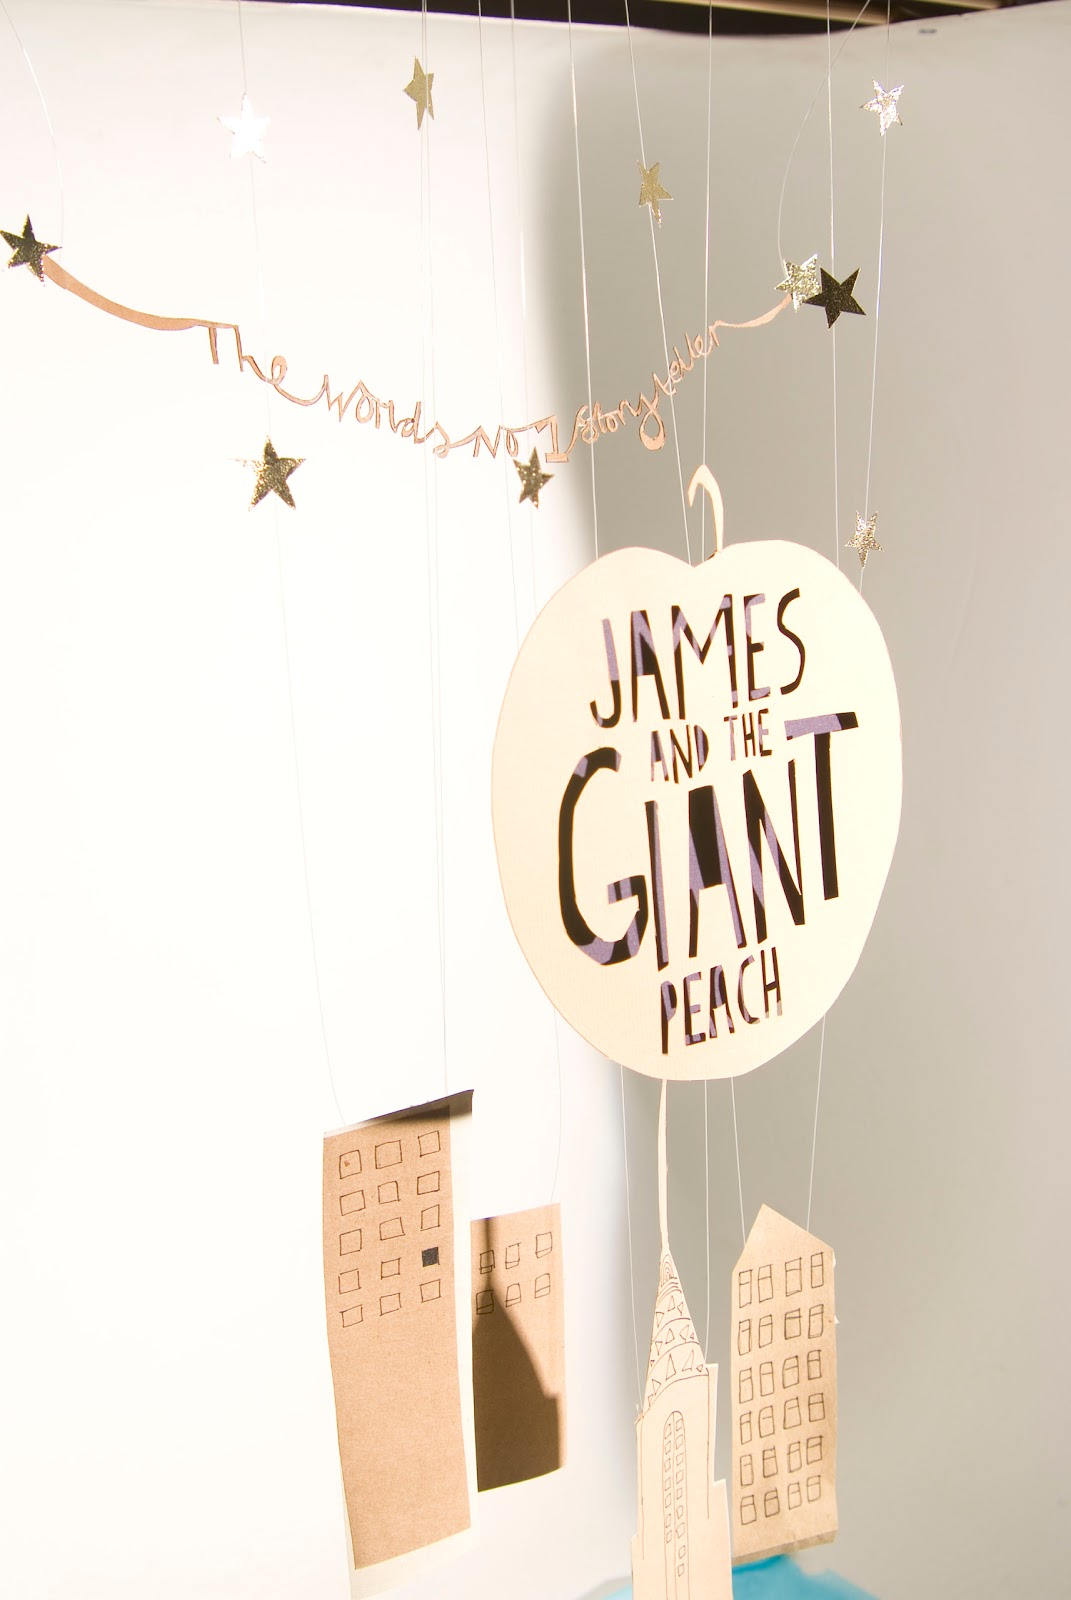 Lisa Rockall Penguin Design Award Book Cover For James And The Giant Peach